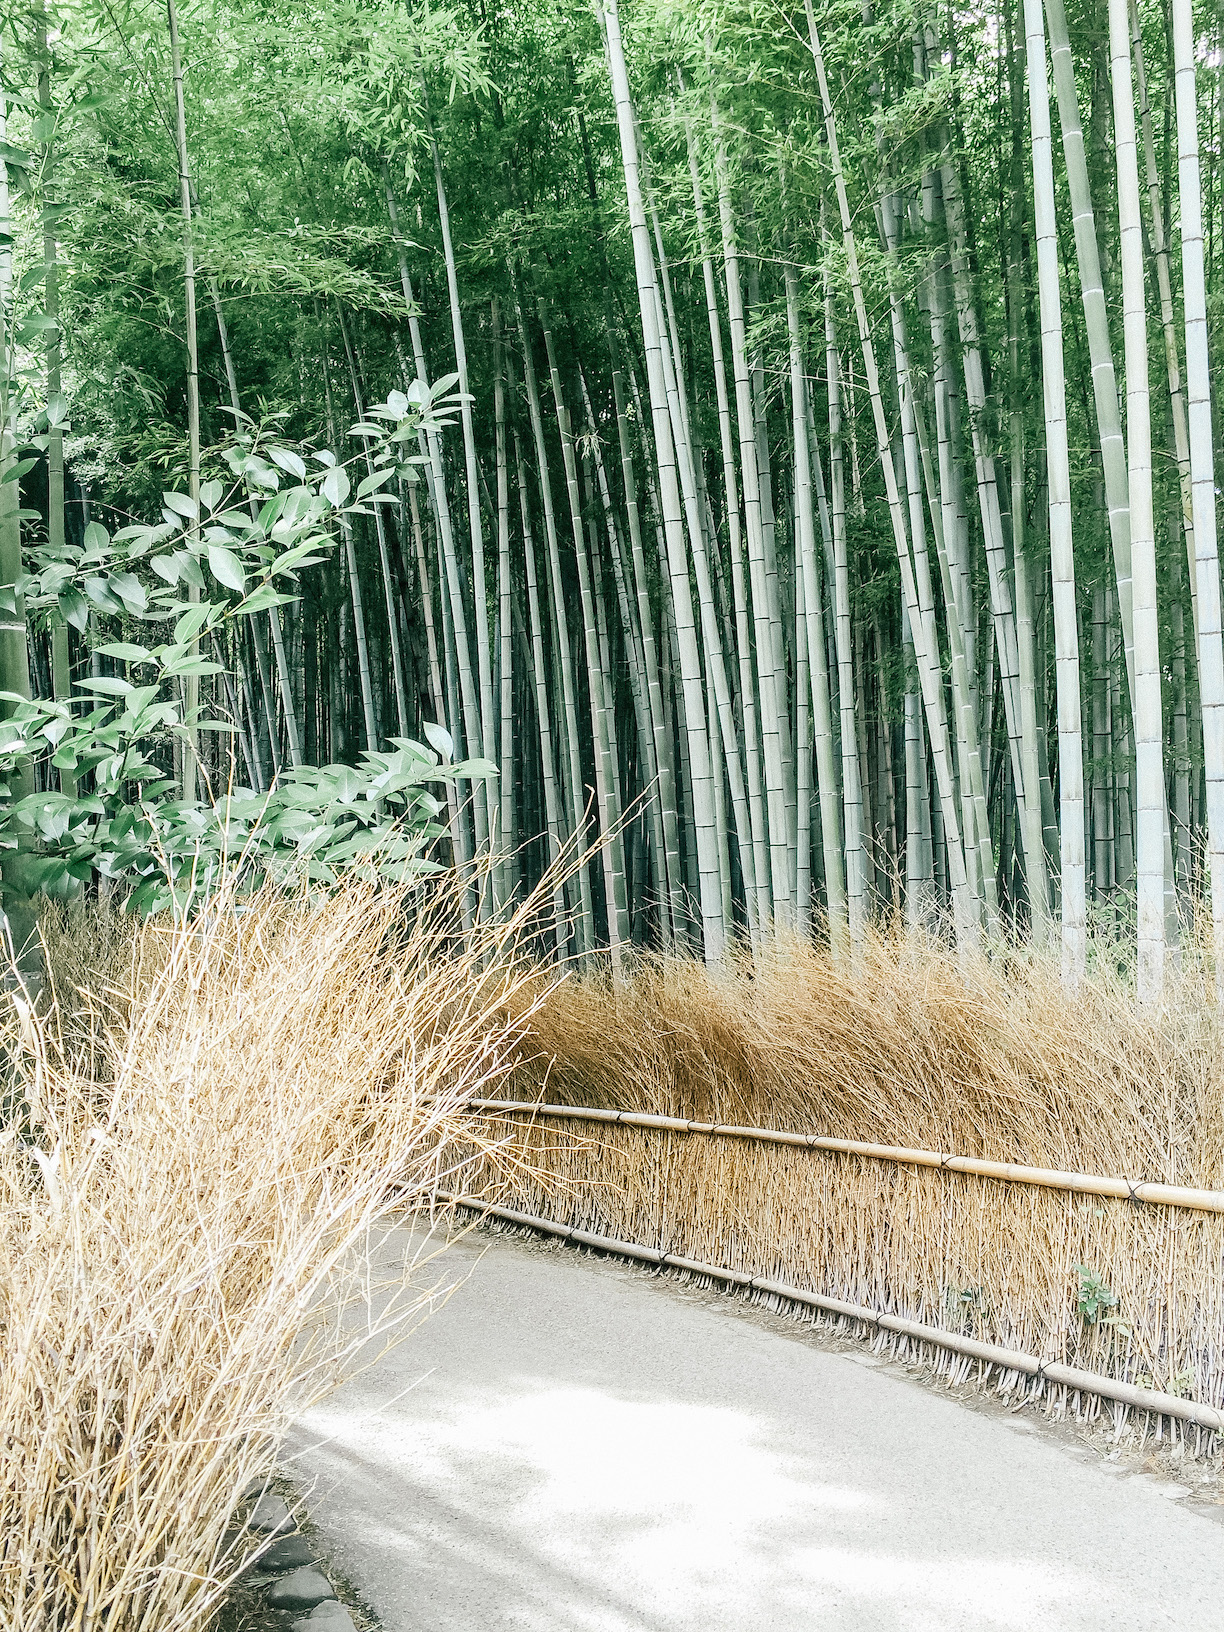 See Bamboo Grove in Japan